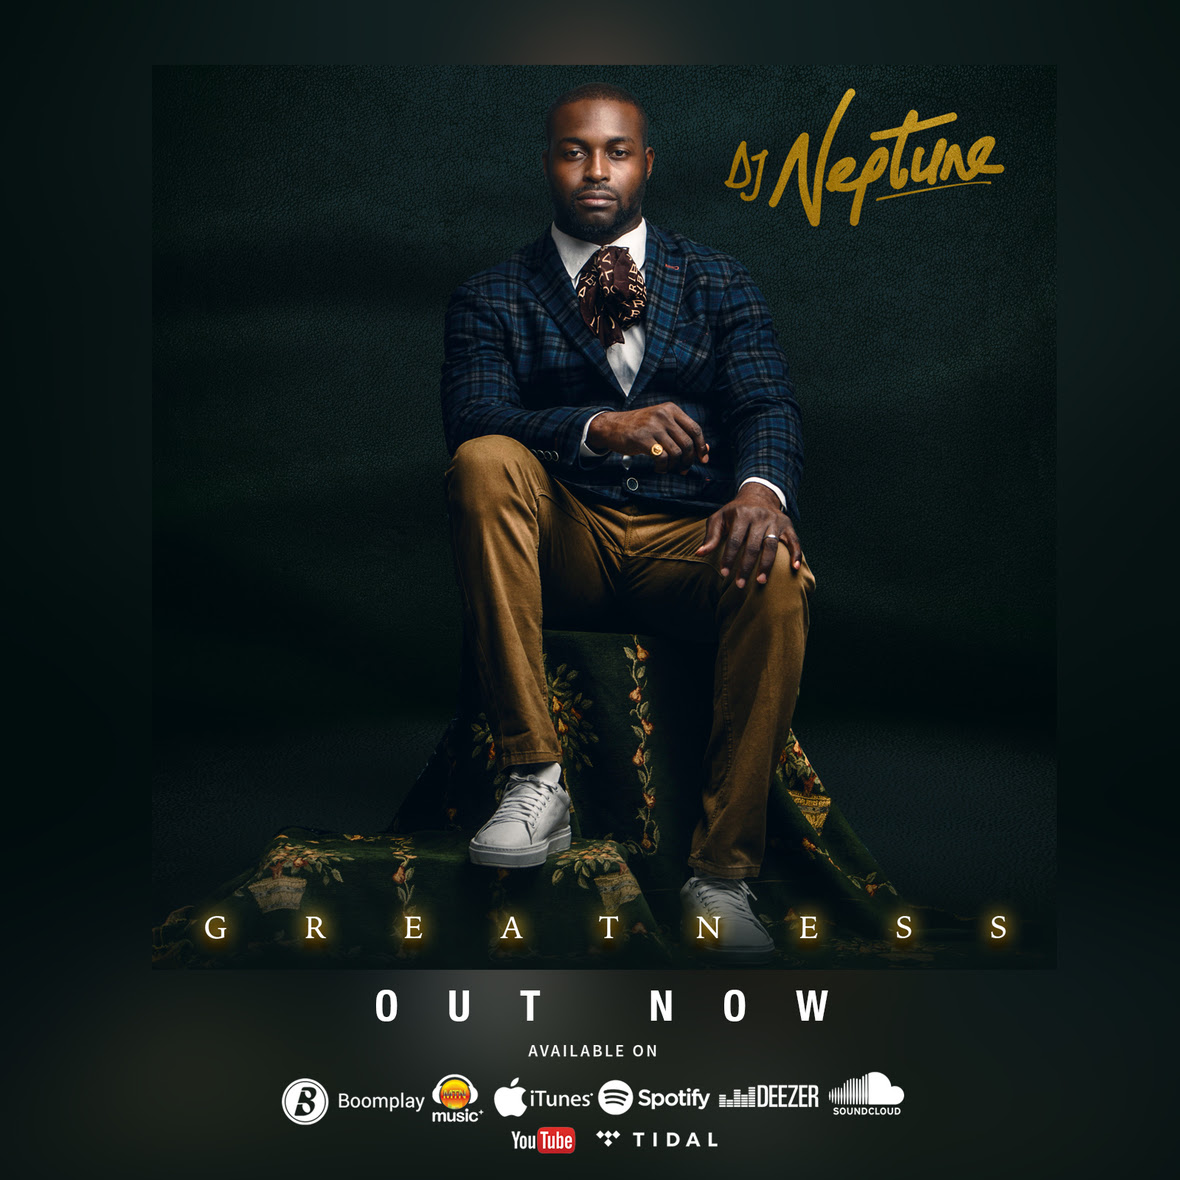 DJ Neptune - Shawa Shawa ft. Larry Gaaga, Olamide, CDQ & Slimcase | Greatness Album, Out Now!